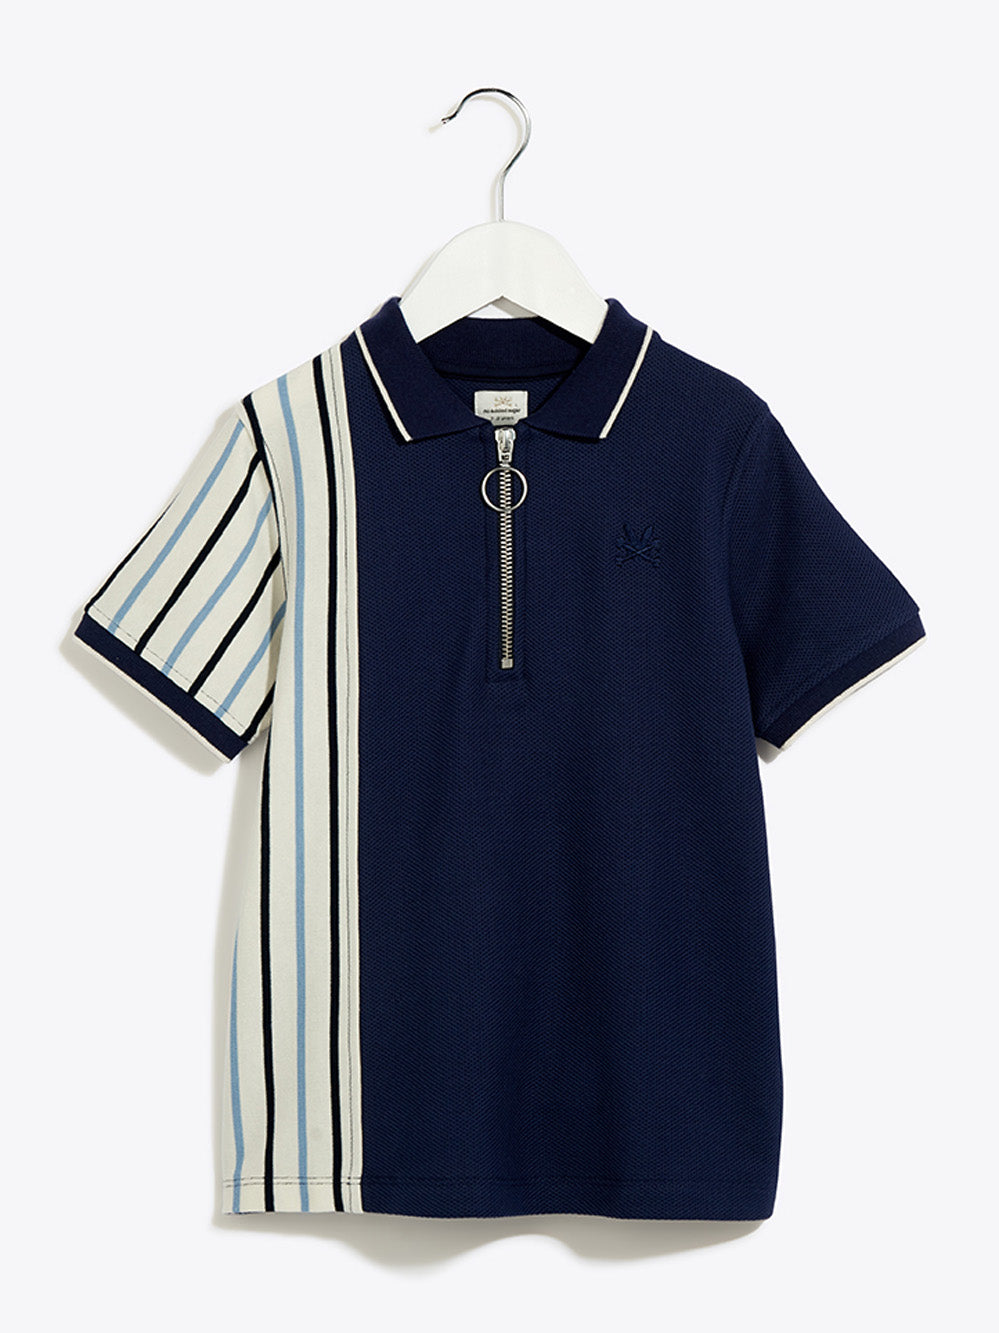 Boys Smart Polo Shirt - Prepster Navy Top Prepster